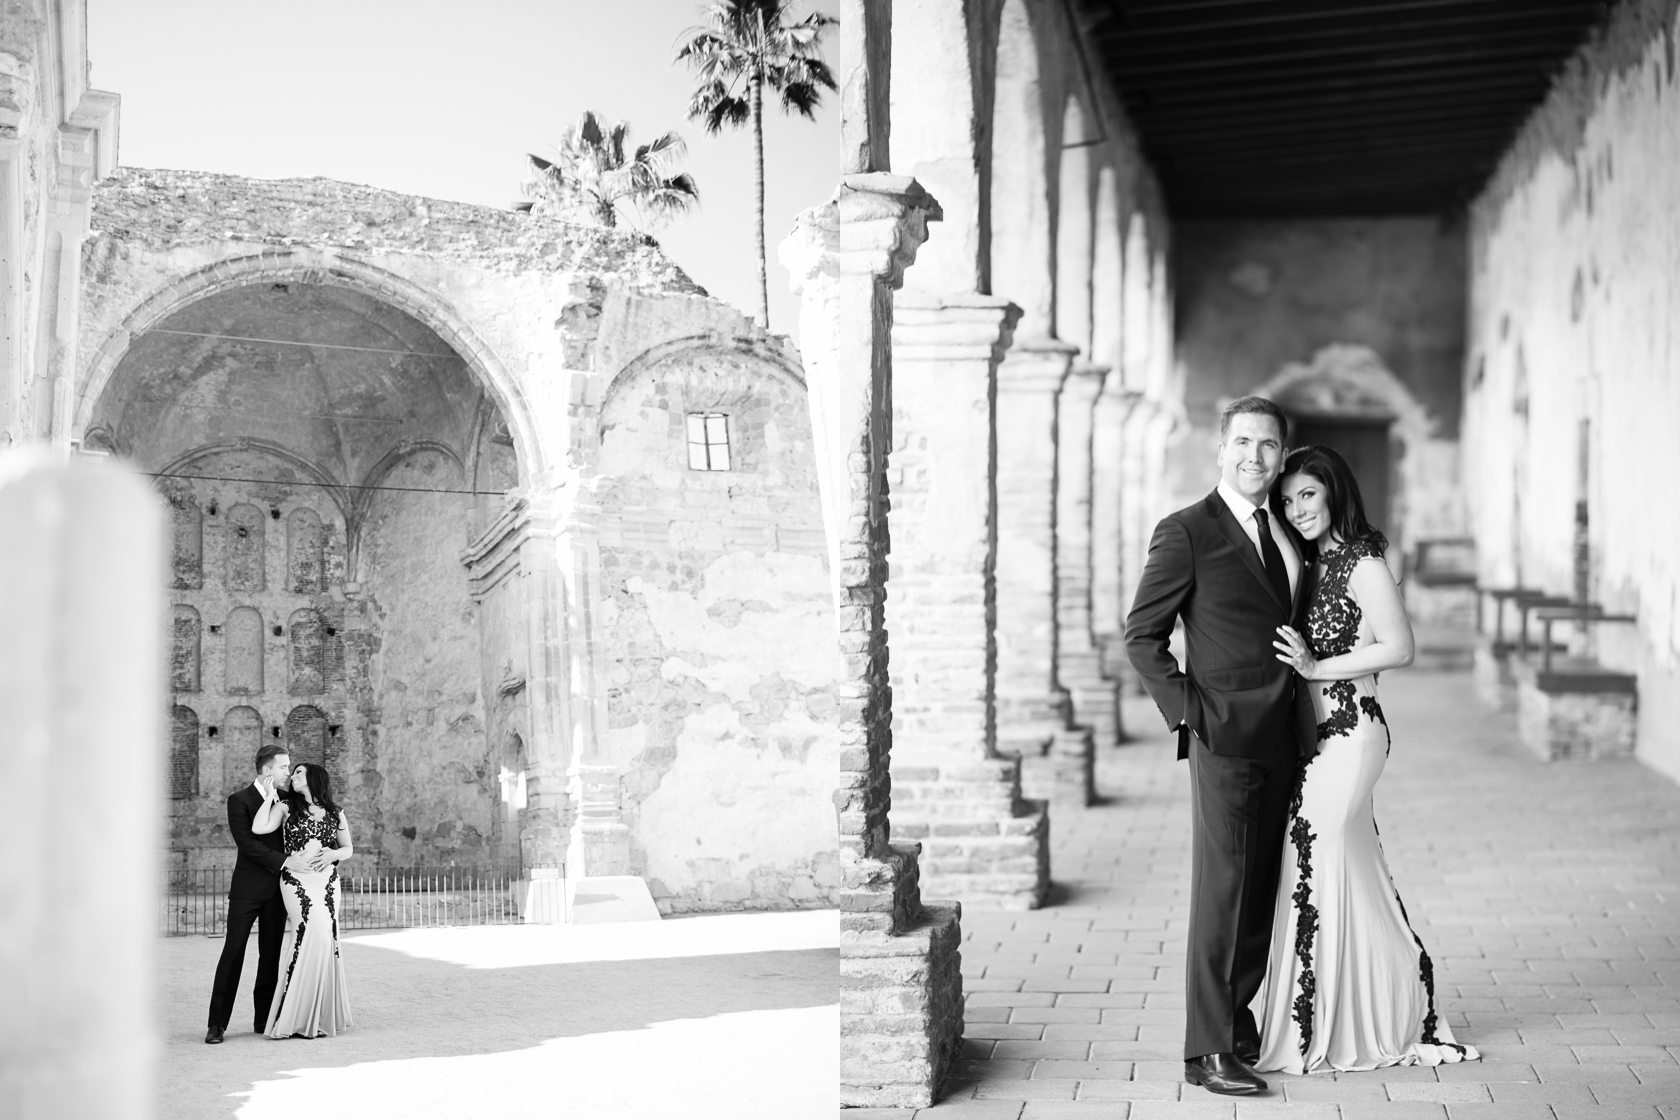 Mission_San_Juan_Capistrano_Engagement_Session_19.jpg